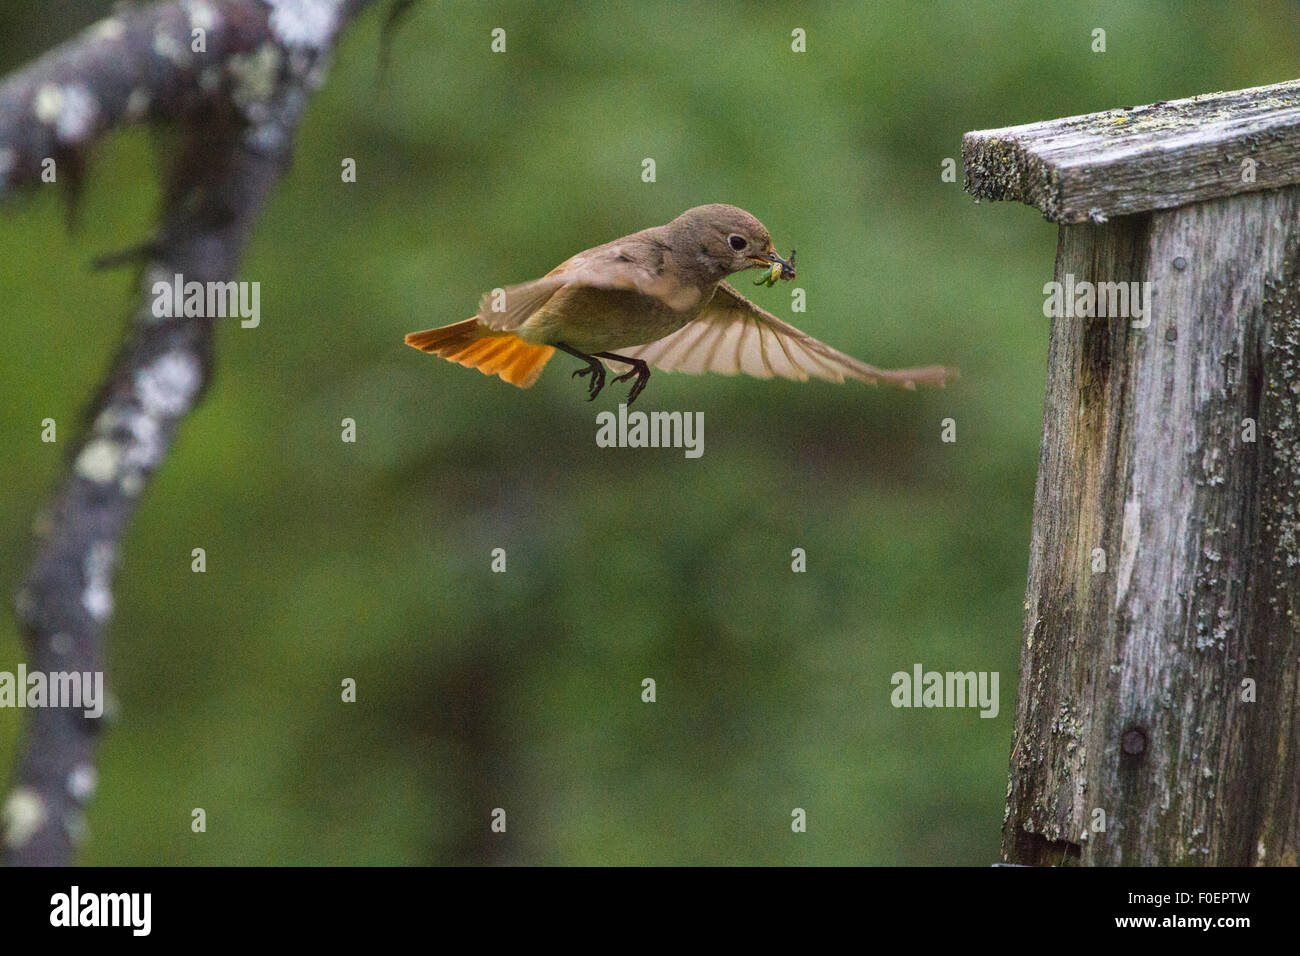 Common Redstart, Phoenicurus phoenicurus, coming with food in his beak to go in her birdhouse - Stock Image